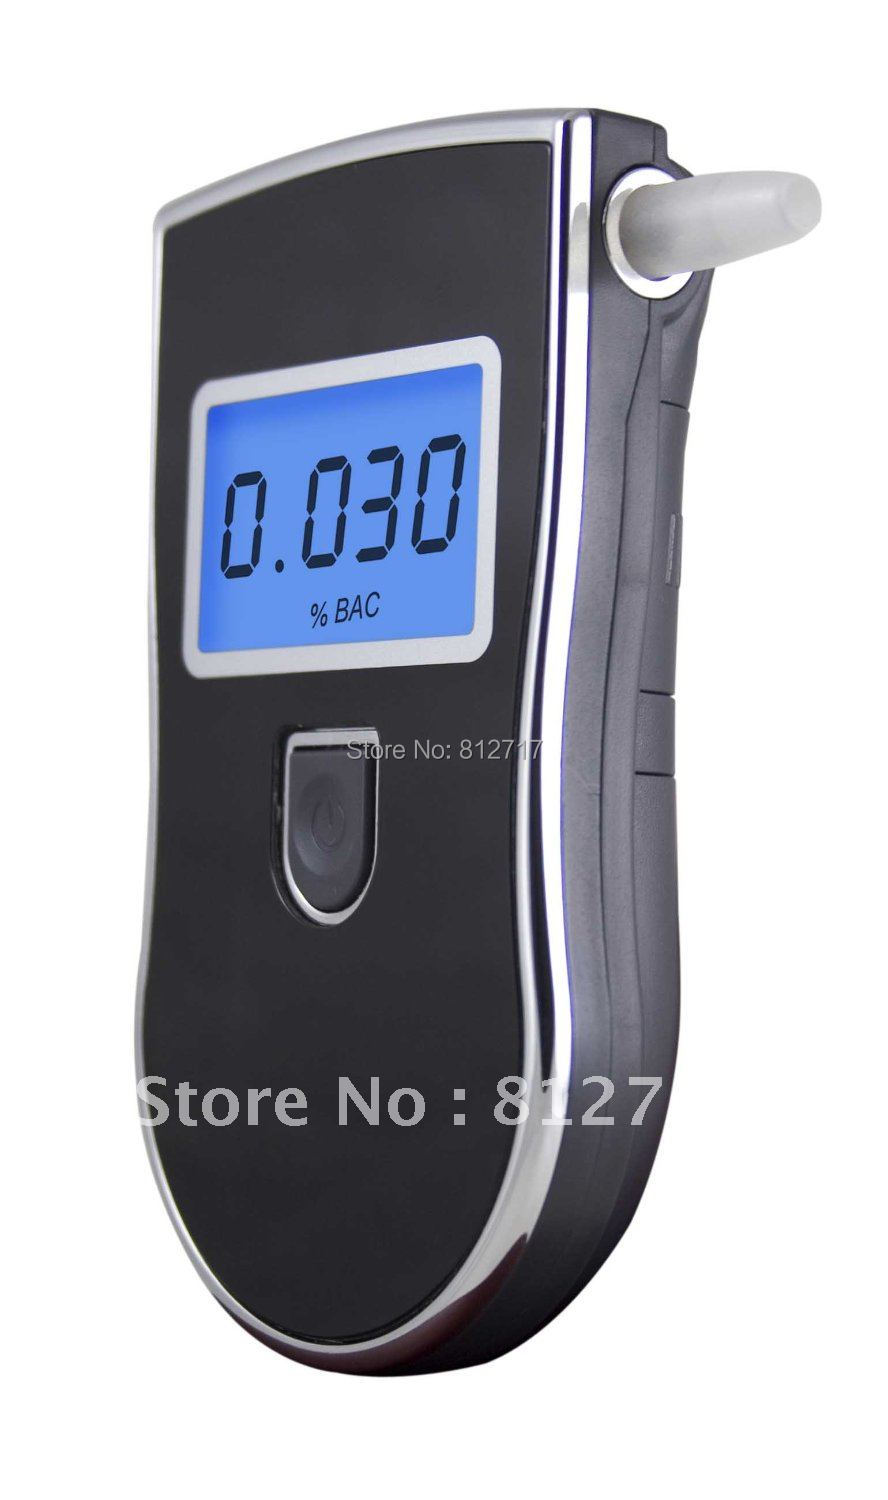 Free shipping! Patent Professional Digital Alcohol Analyser Breathalyzer High Quality With 5pcs Mouthpieces(China (Mainland))